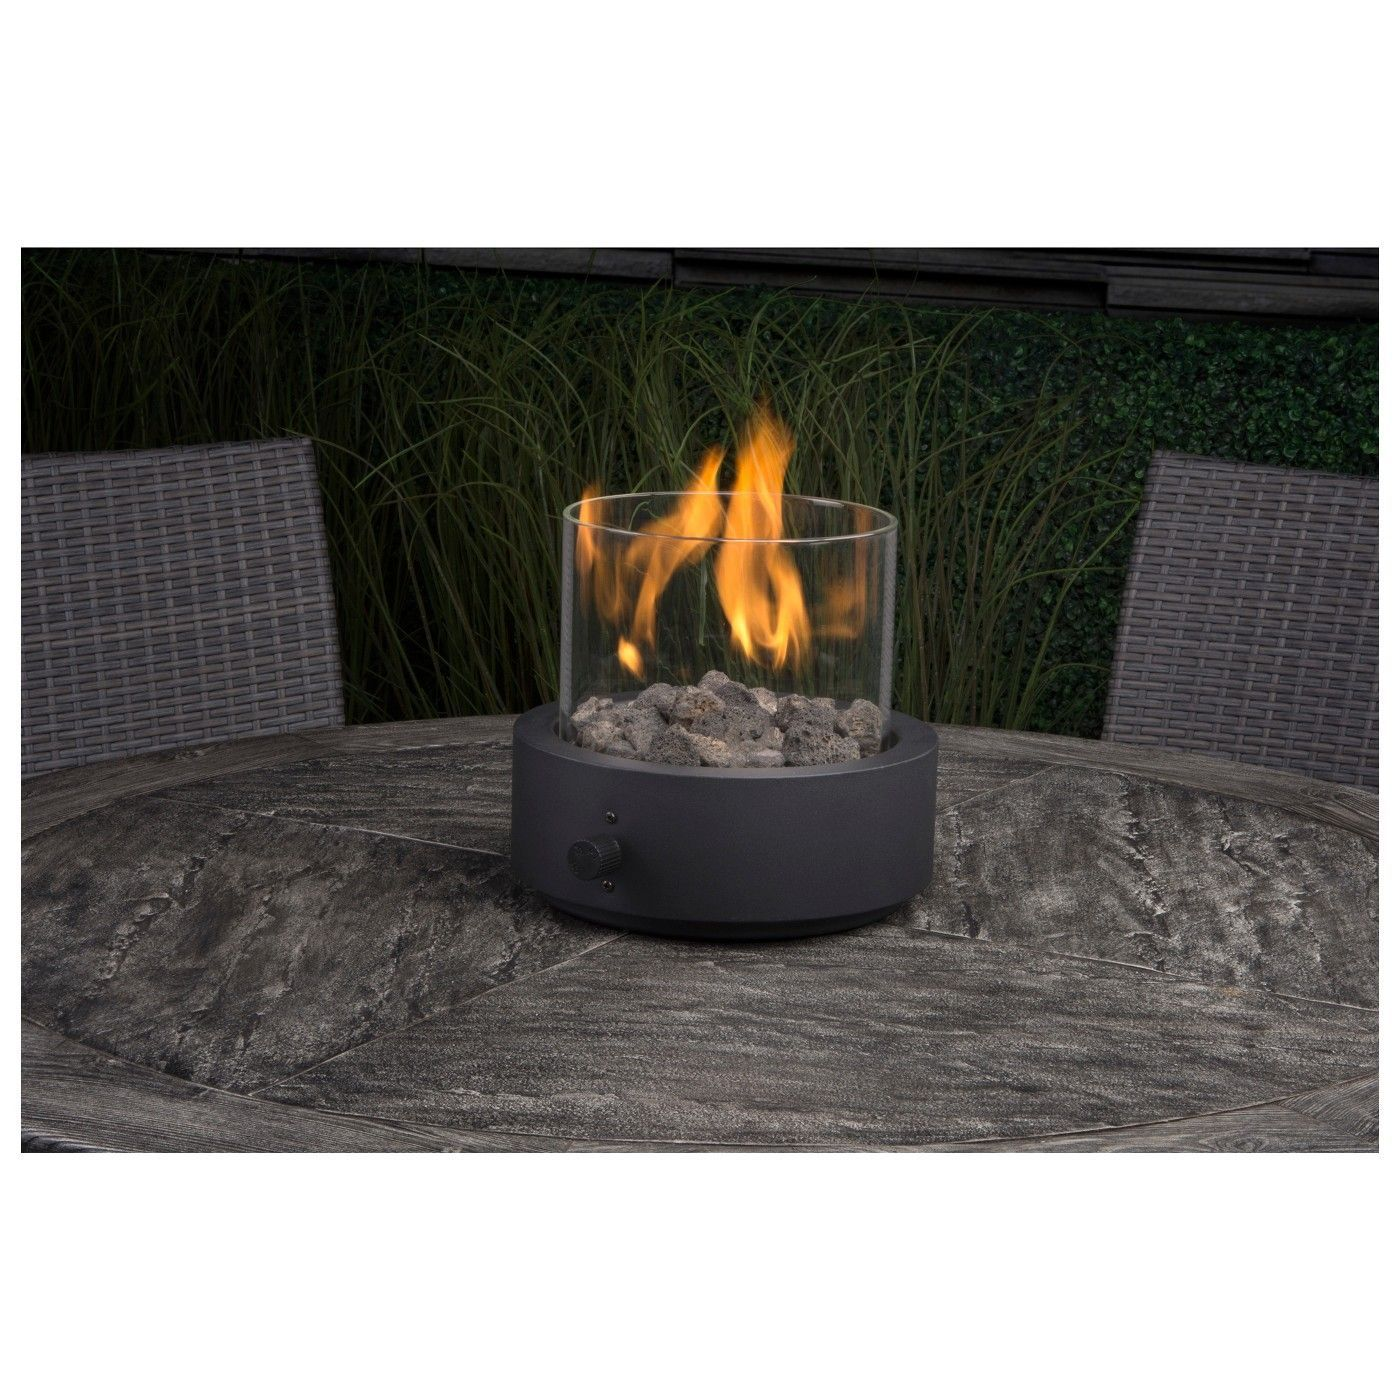 ambient remote control gas fireplace